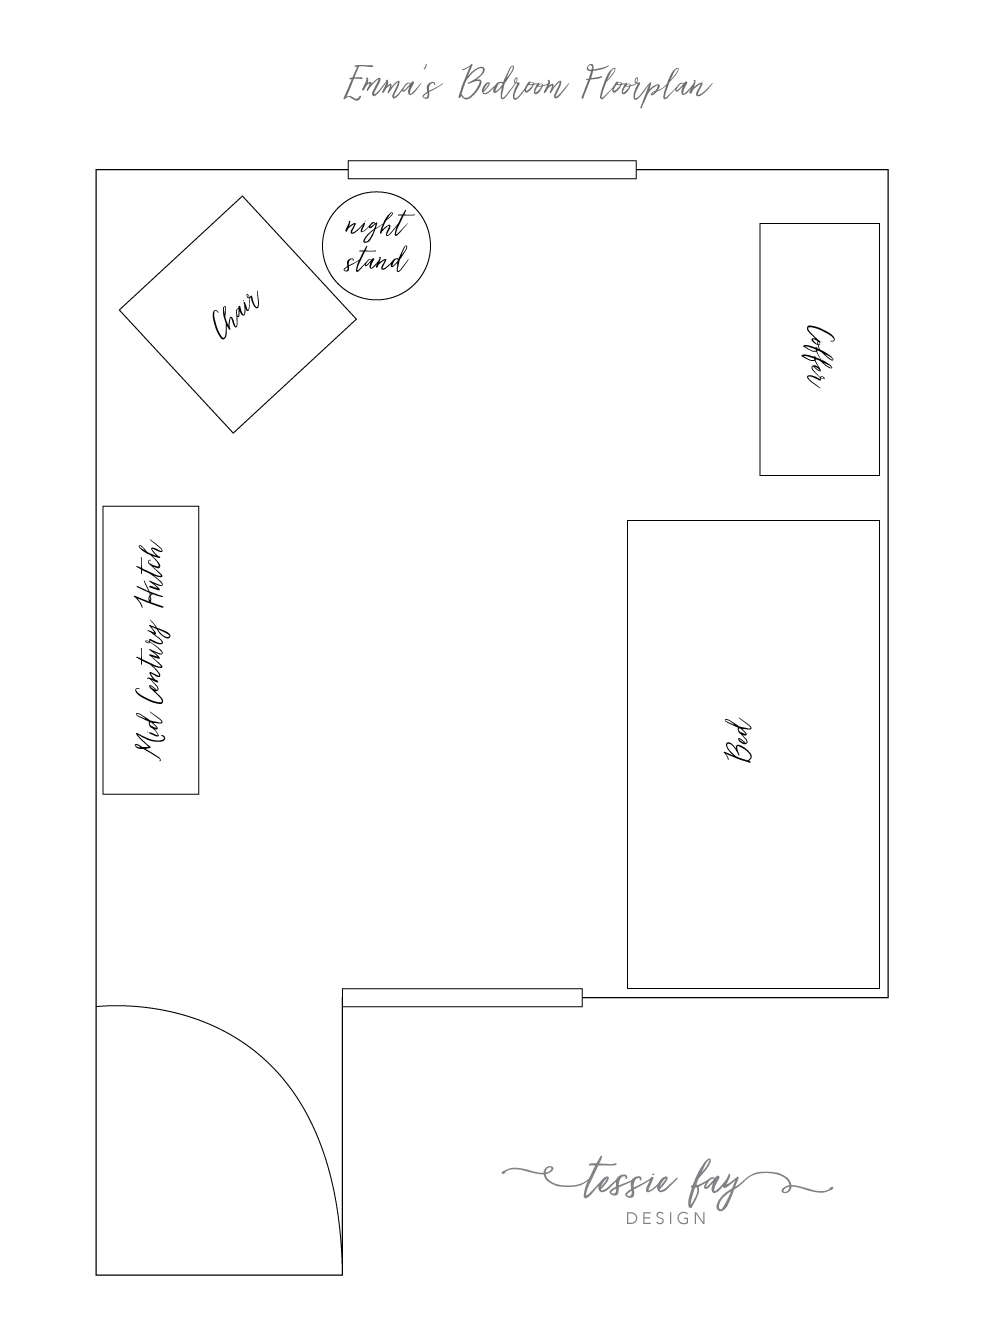 Girl's Bedroom Floorplan